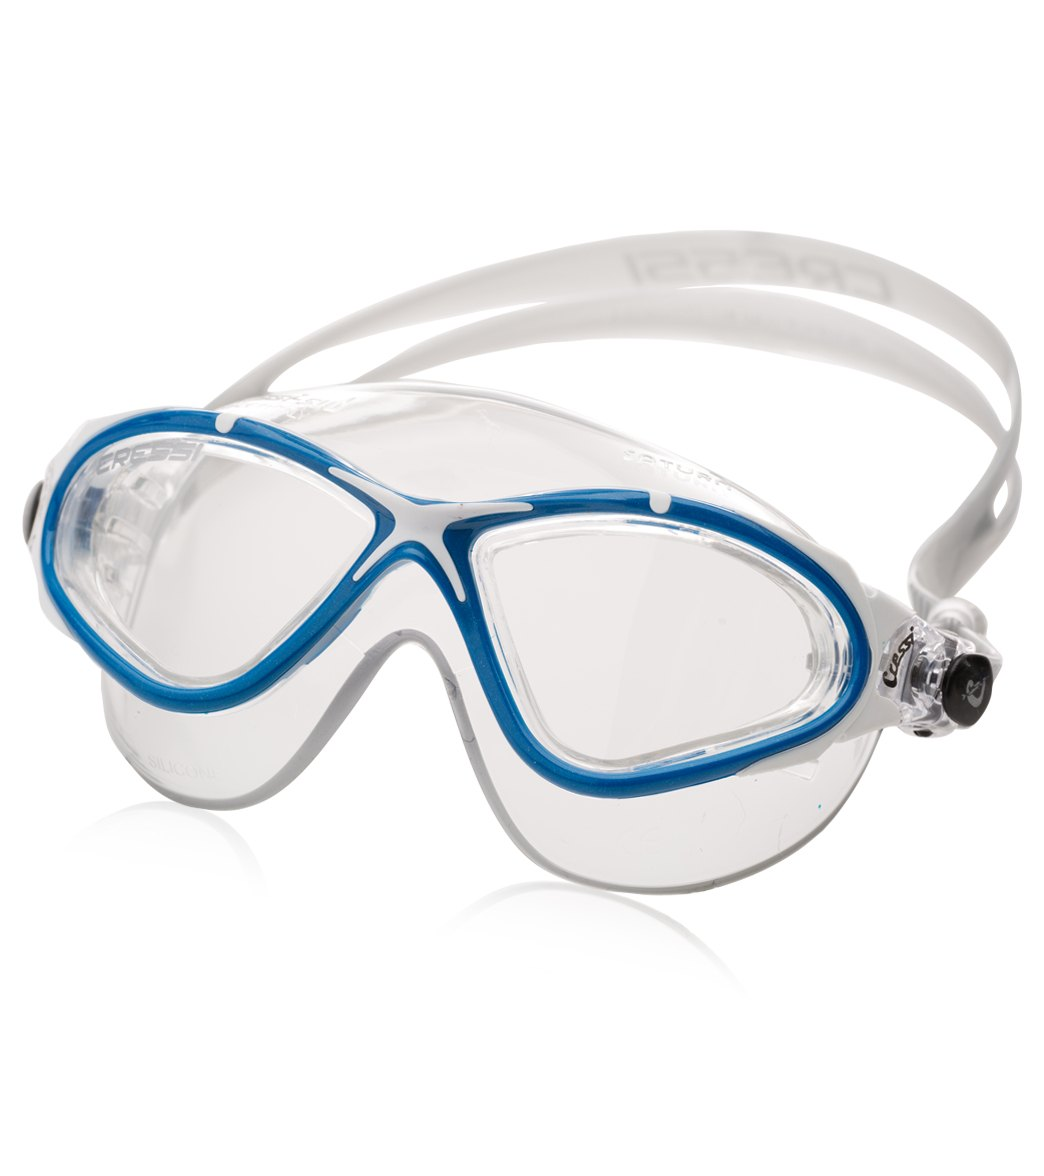 fda78113436 Cressi Saturn Crystal Swim Mask at SwimOutlet.com